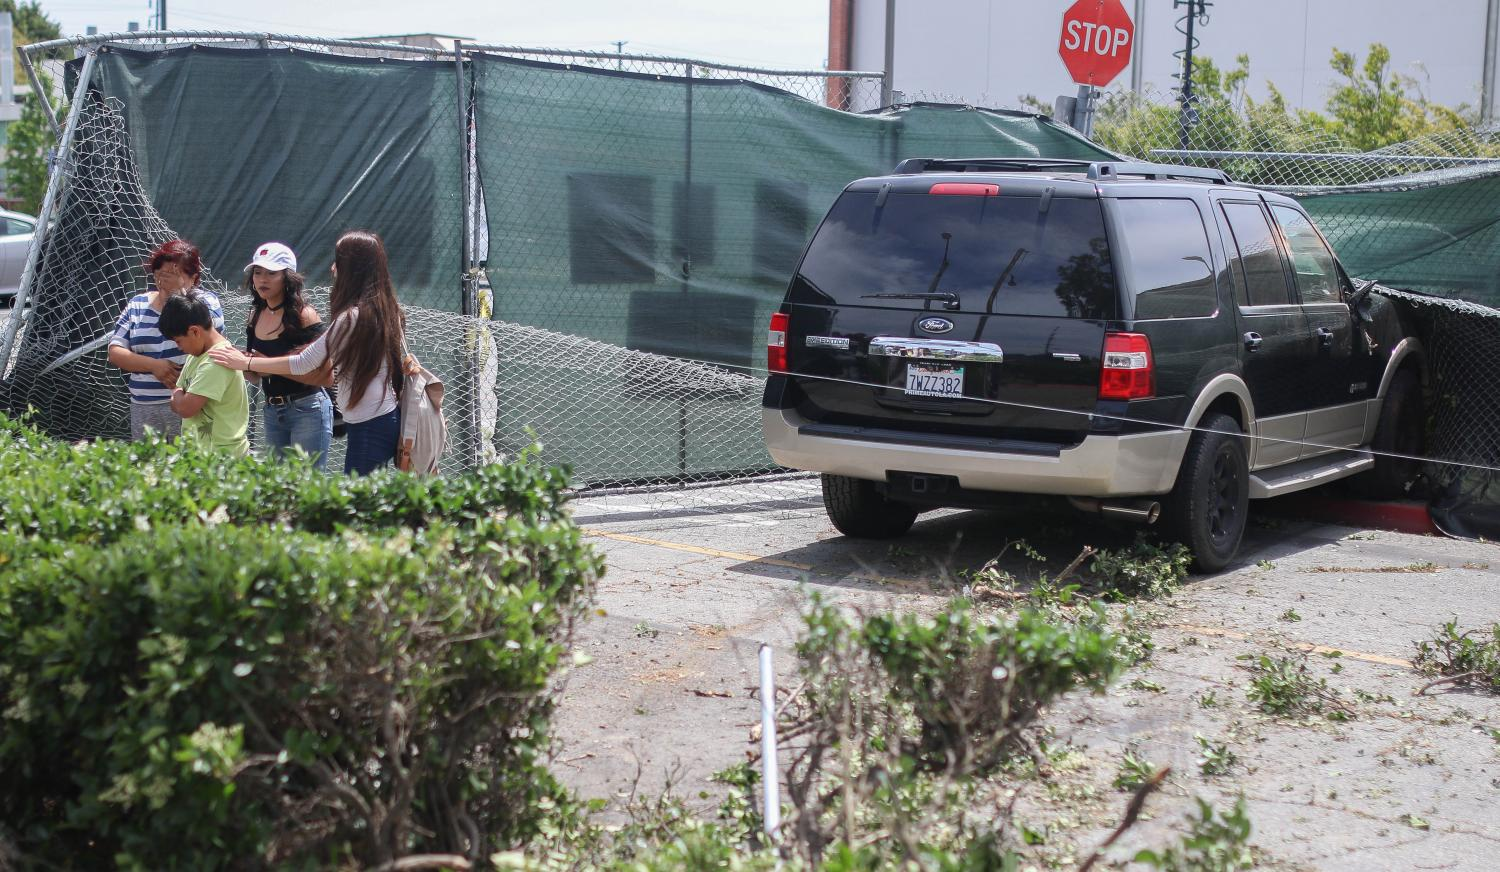 Vehicle is hit and crashes into construction fence next to Parking Lot B